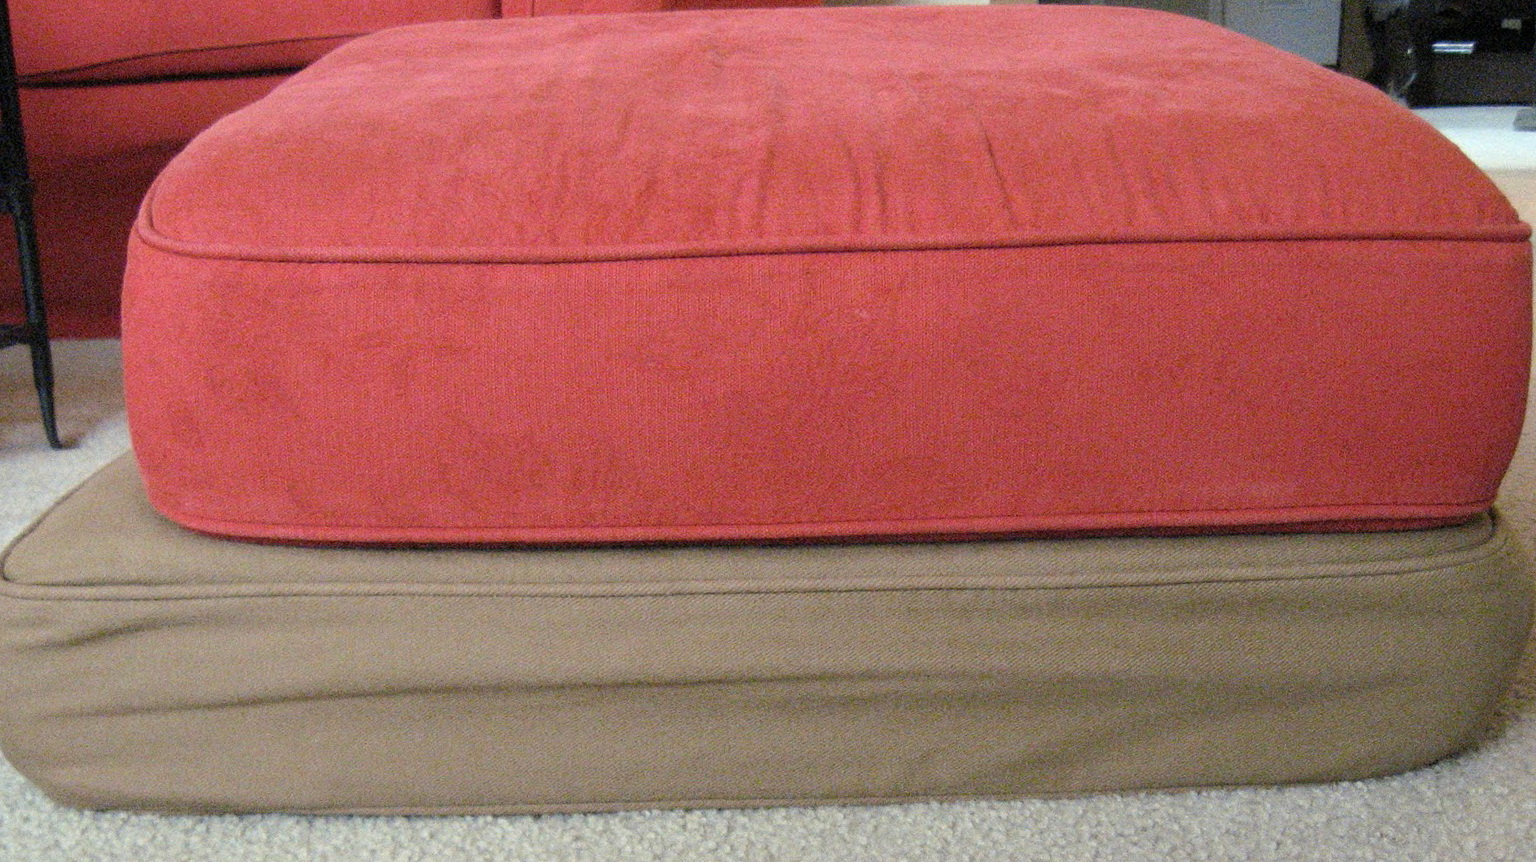 Couch Cushions Replacement Covers